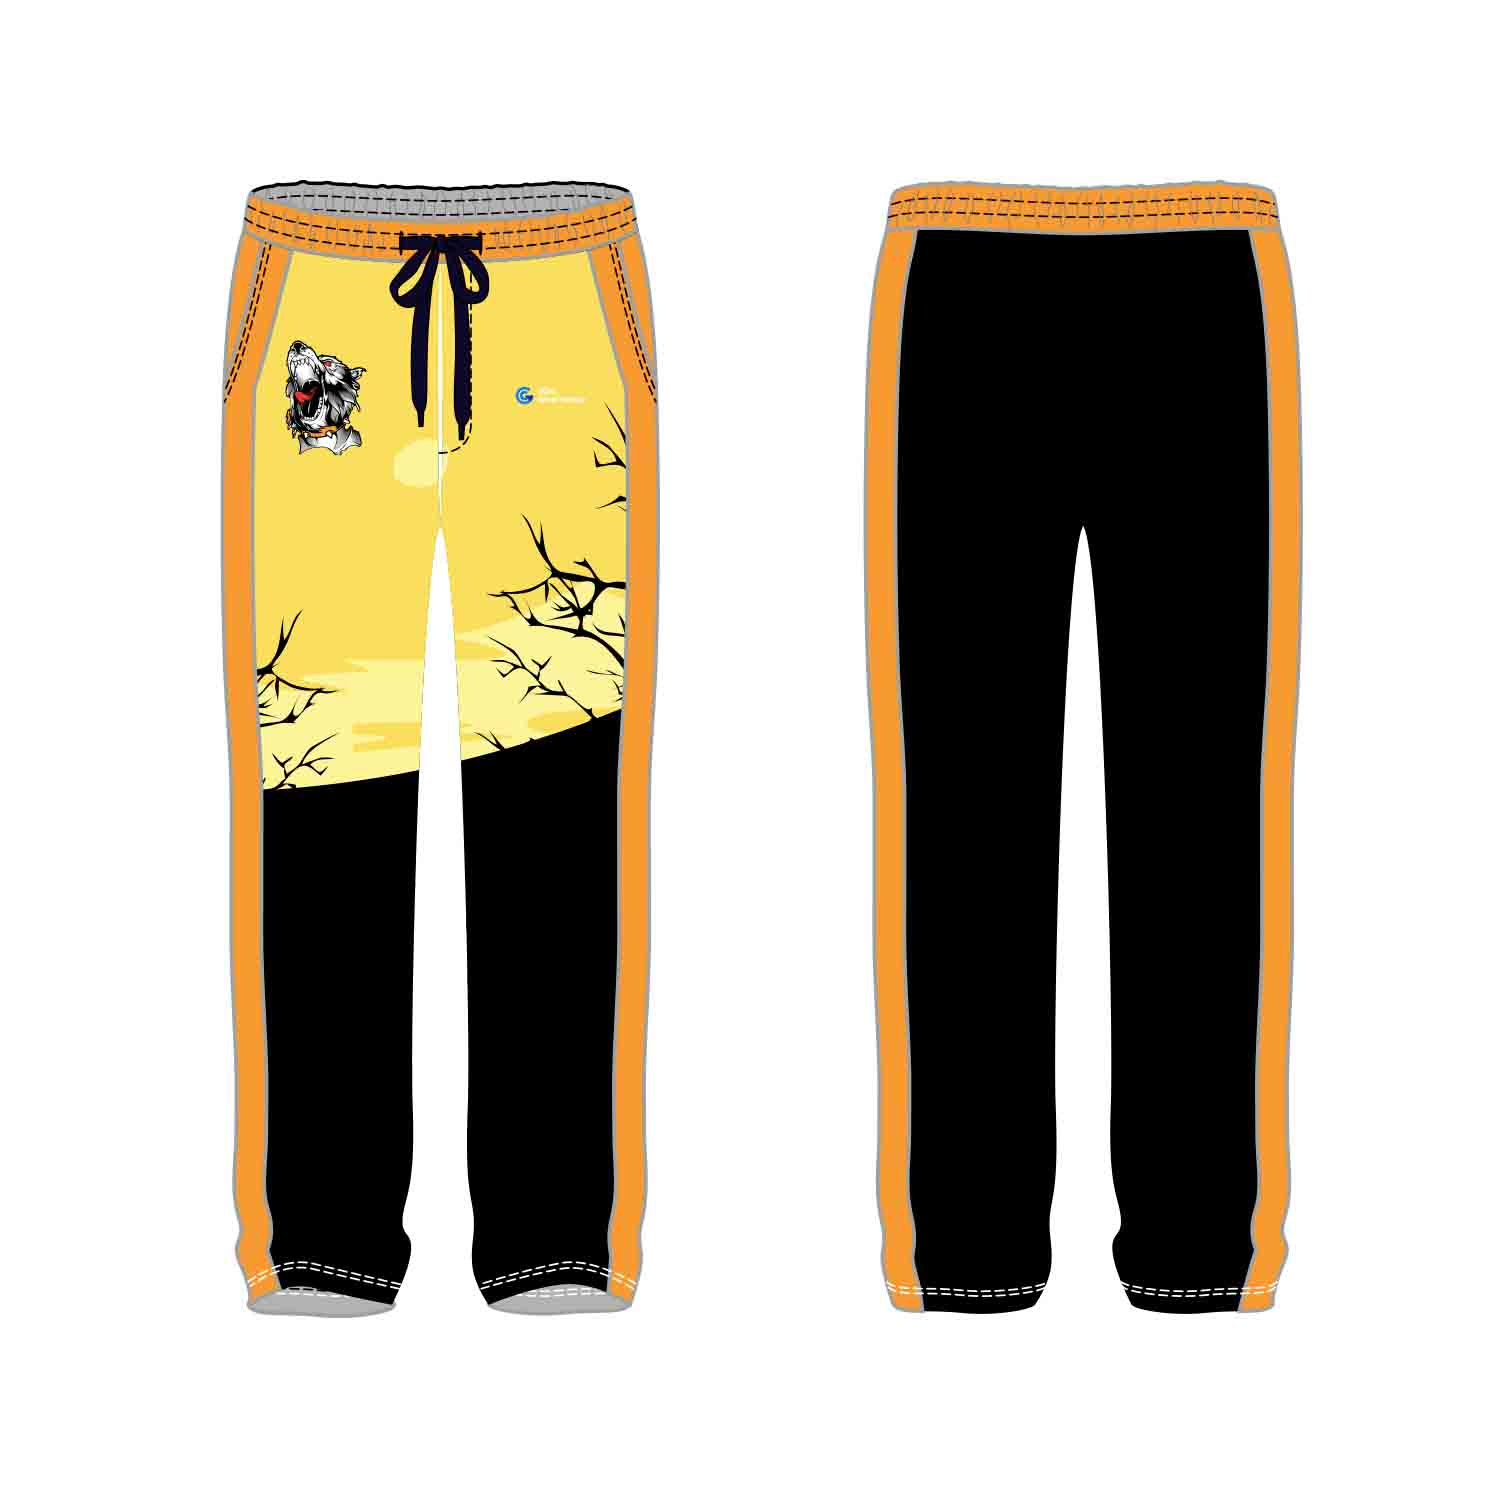 wholesale-100-polyester-custom-sublimated-printed-custom-soccer-pants